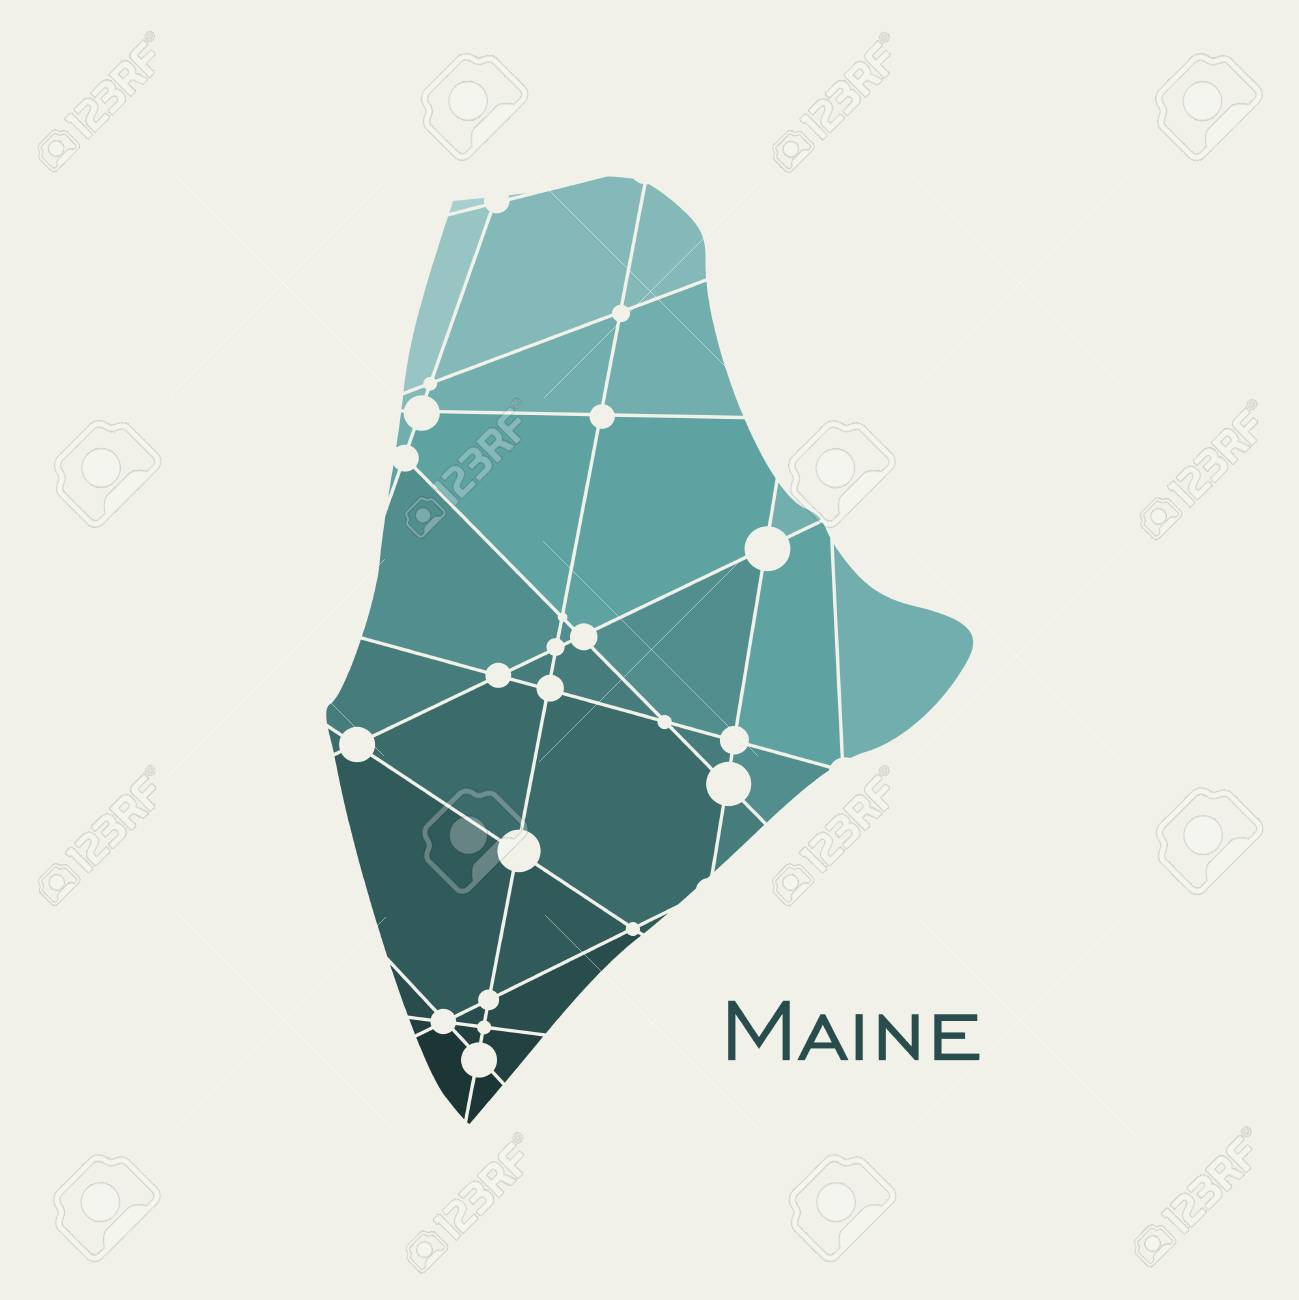 Image relative to USA travel. Maine state map textured by lines..